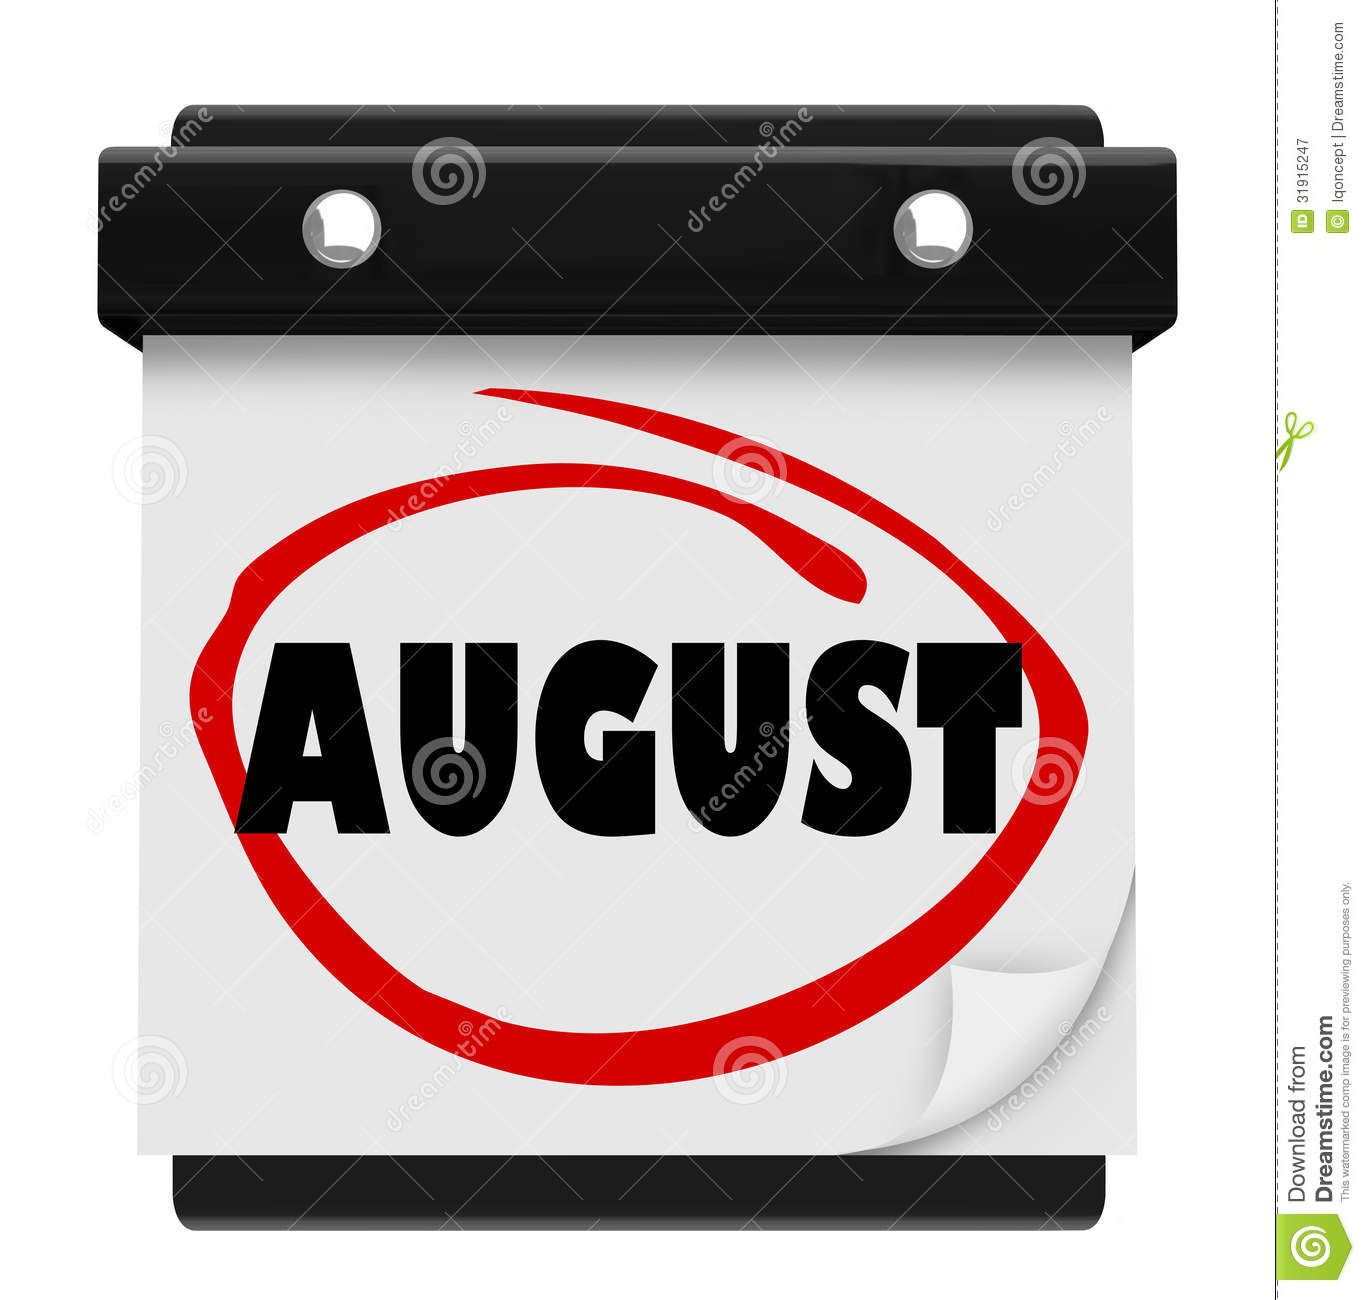 August month calendar clipart png freeuse August Word Wall Calendar Change Month Schedule Royalty Free Stock ... png freeuse